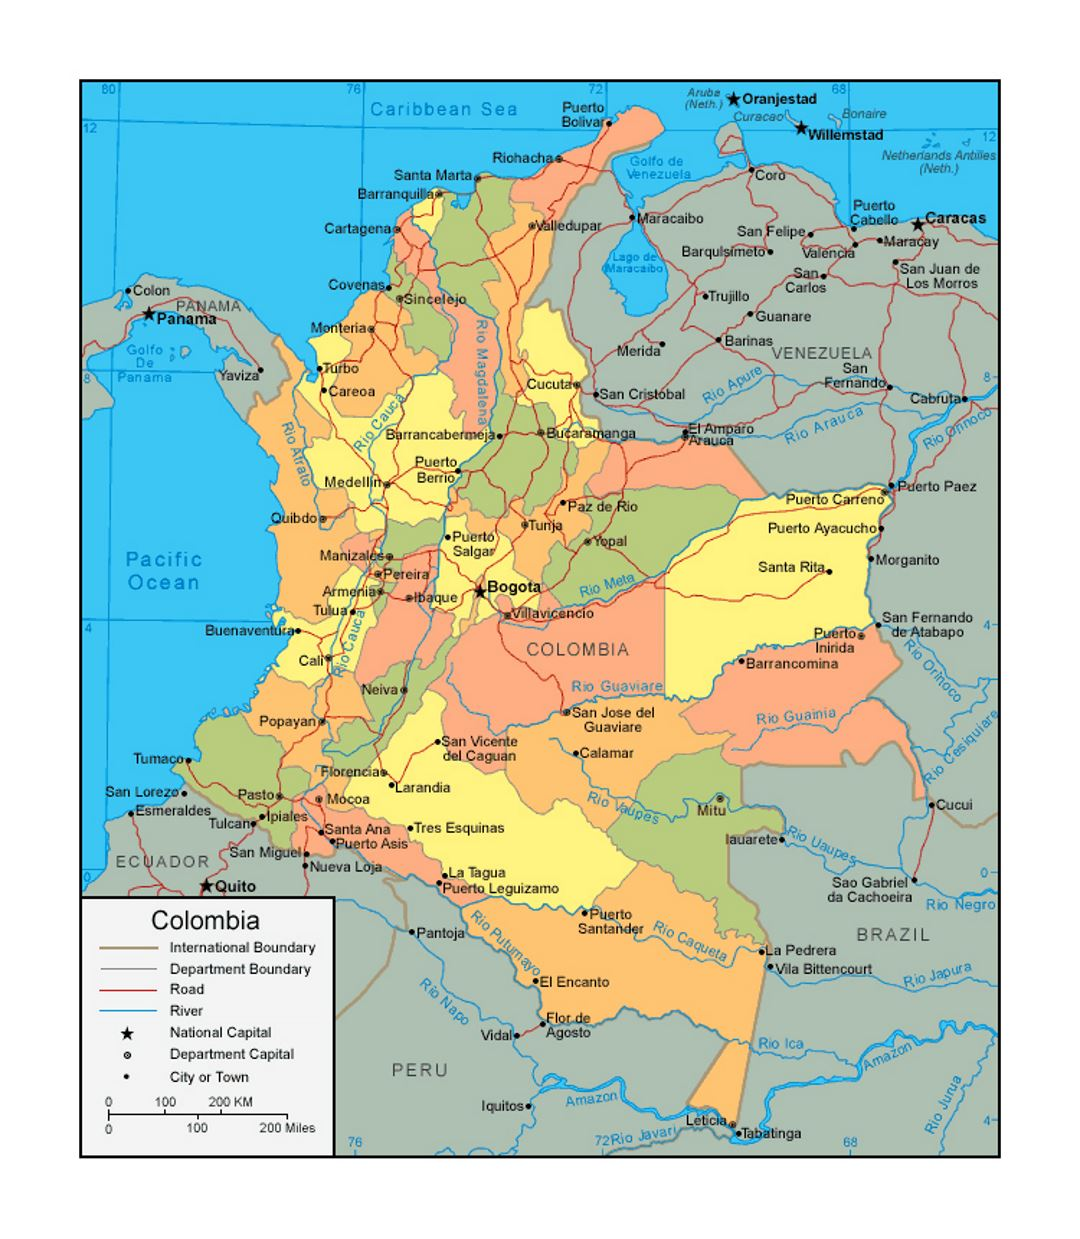 Political and administrative map of Colombia with roads and major